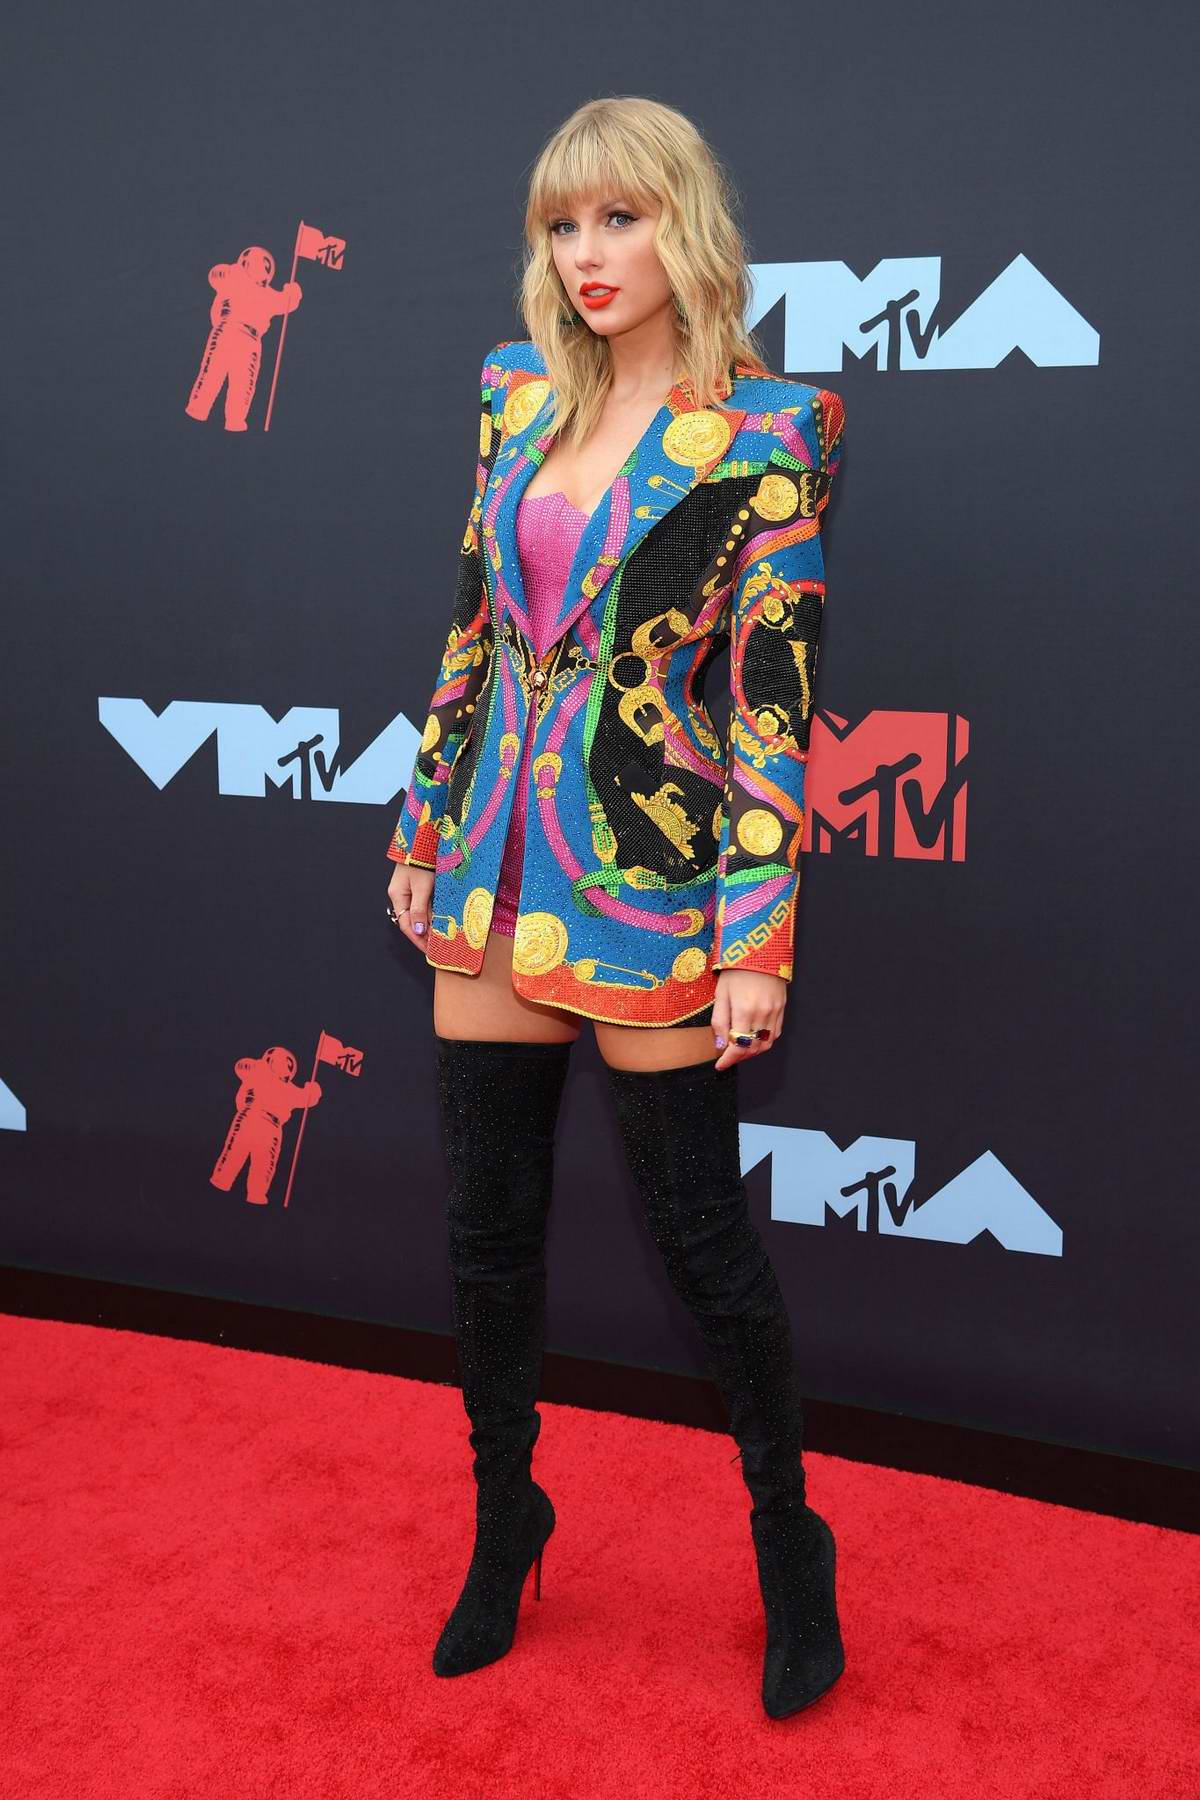 Taylor Swift attends the 2019 MTV Video Music Awards at Prudential Center in Newark, New Jersey